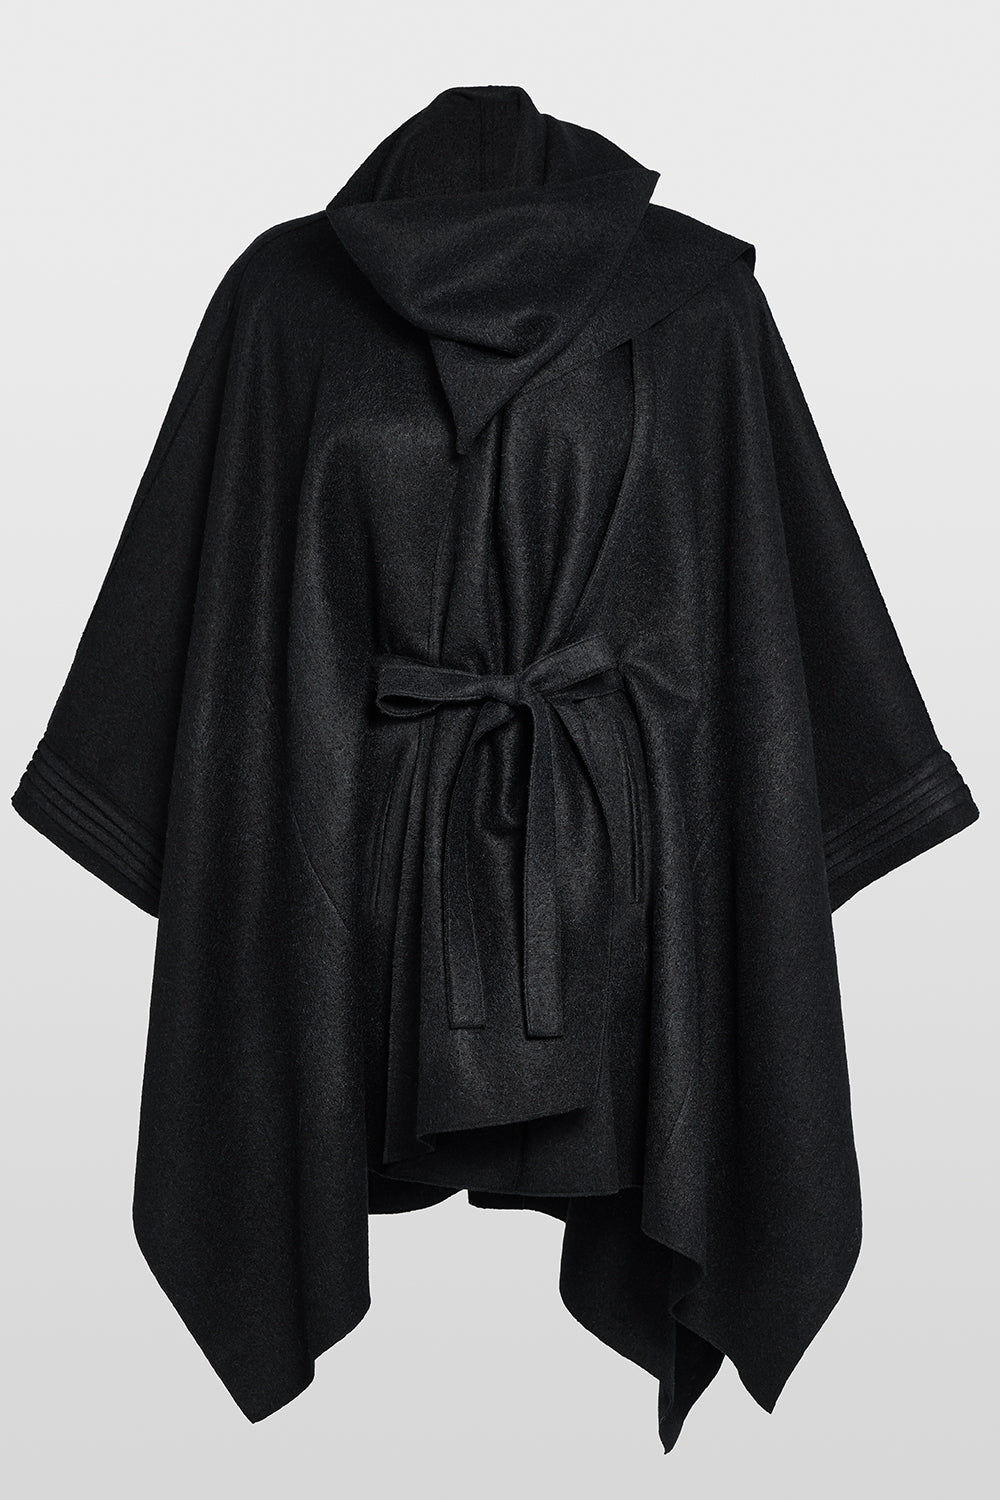 Sentaler Poncho with Shawl Collar and Belt featured in Superfine Alpaca and available in Black. Seen off model.